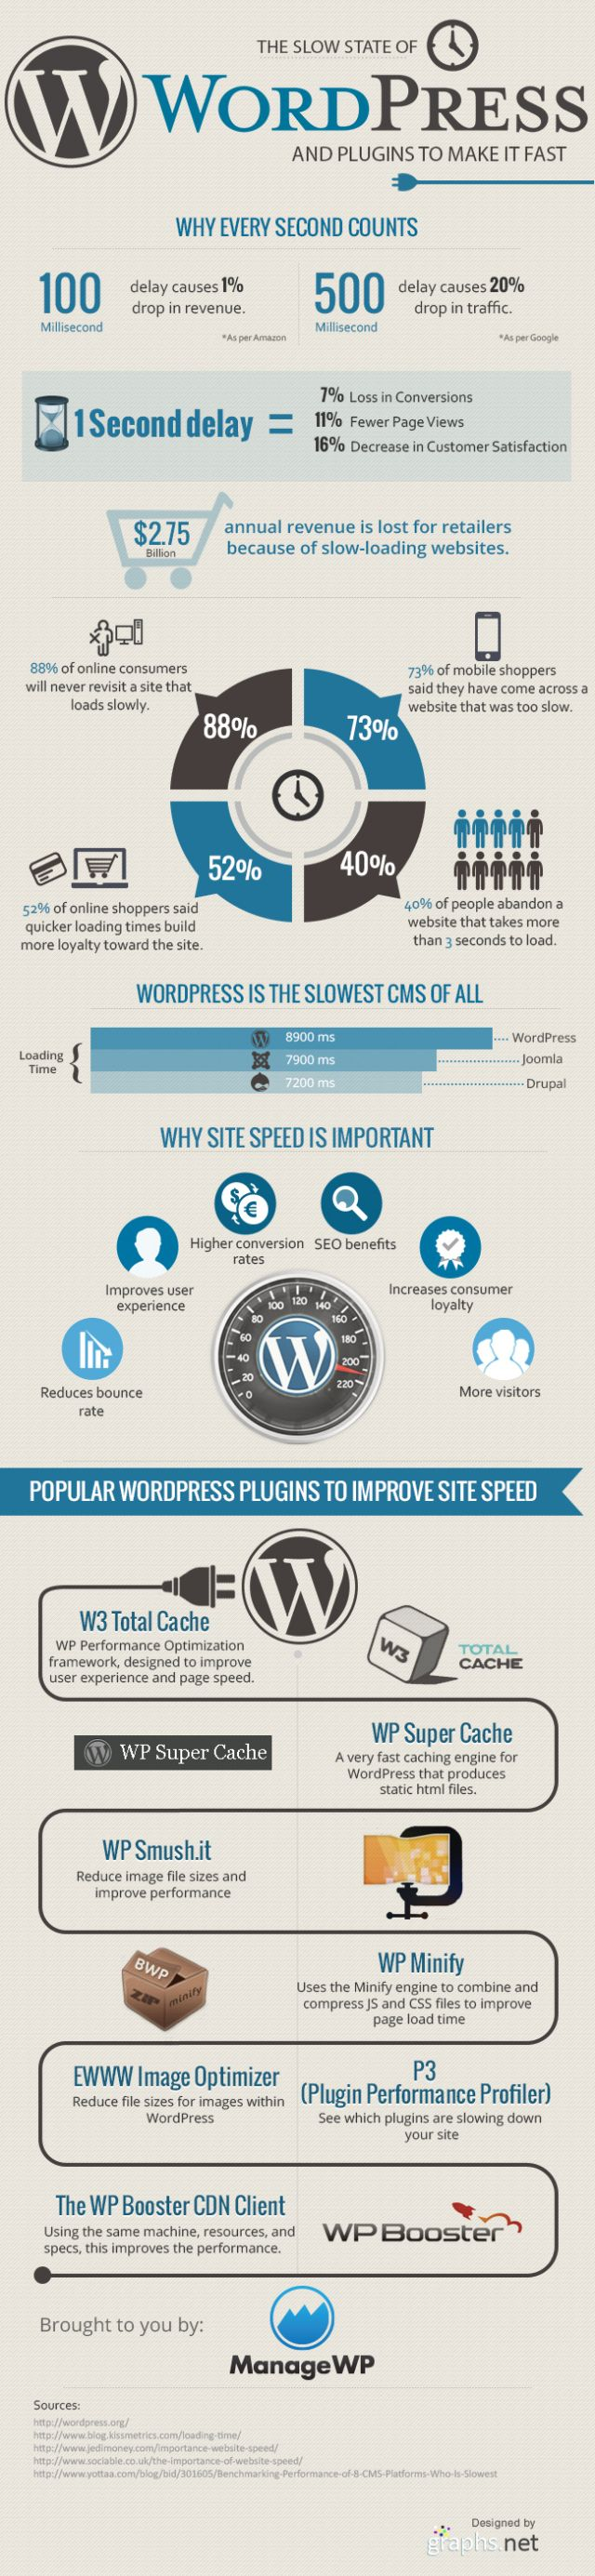 The slow state of WordPress and plugins to make it fast #infografia #infographic #socialmedia